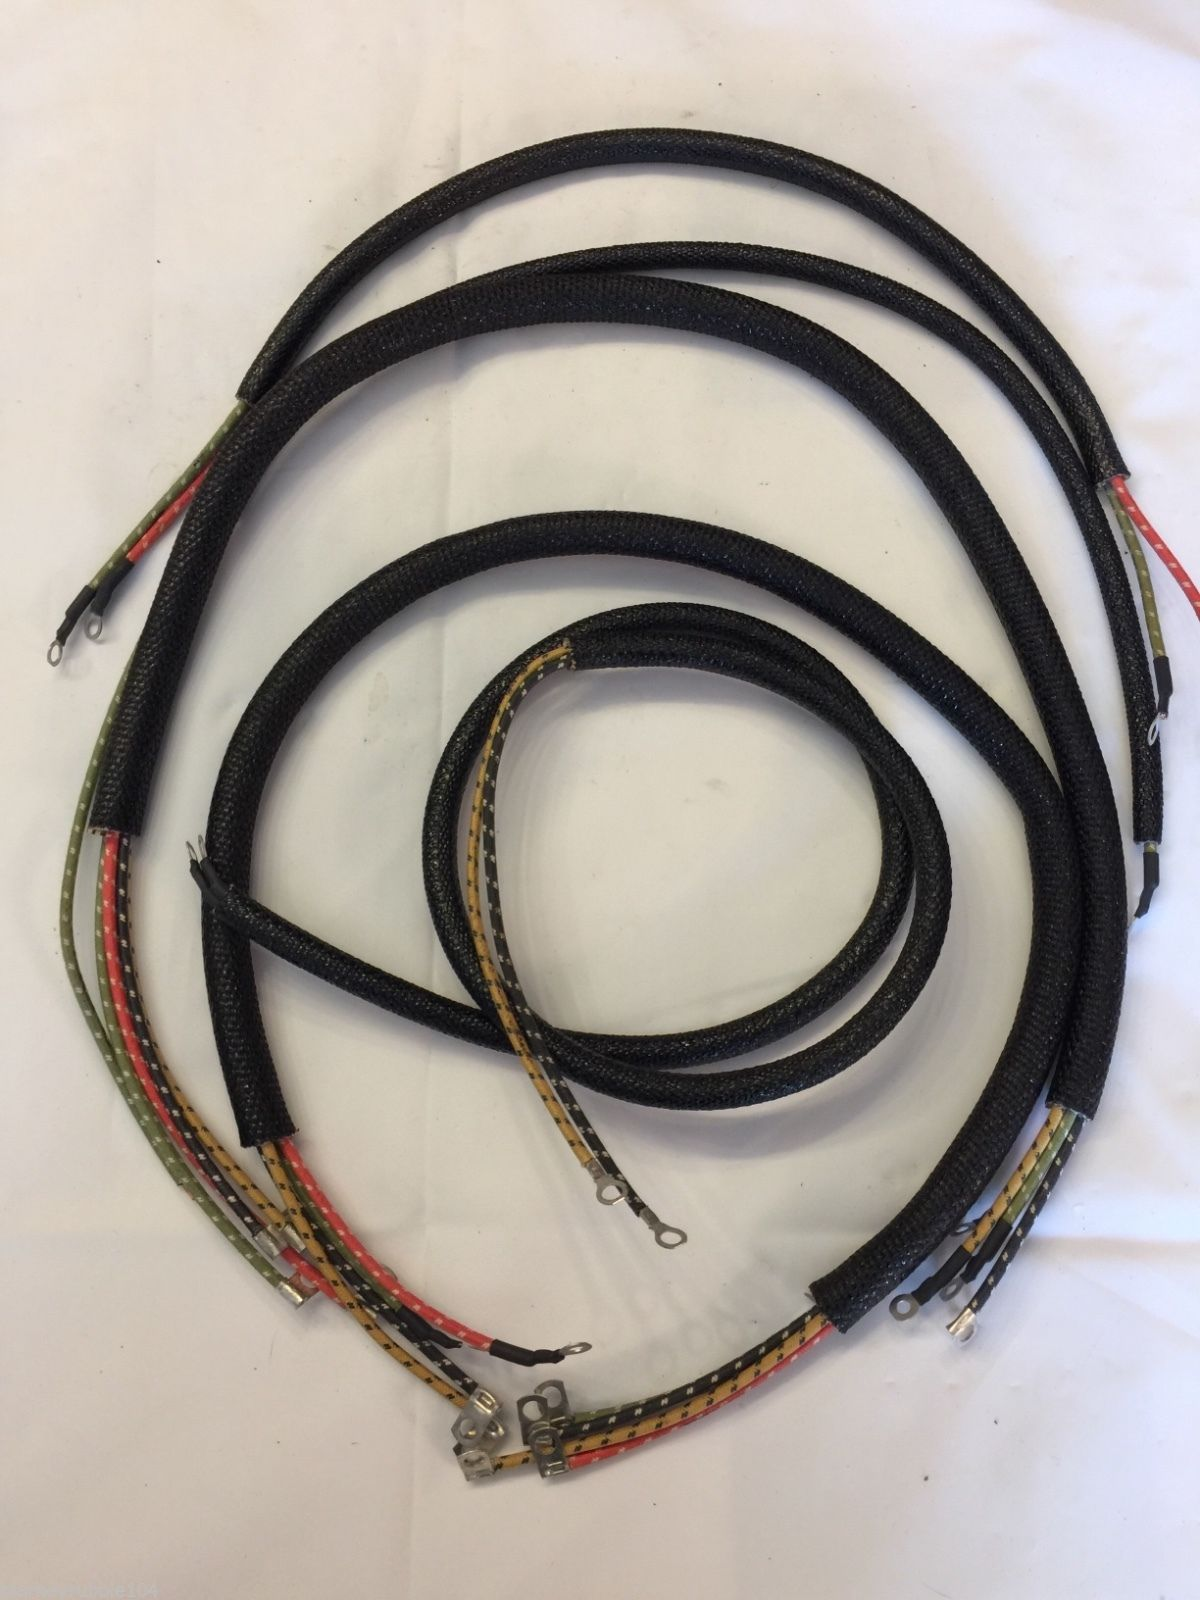 panhead wiring harness trusted wiring diagrams painless wiring harness harley 70321 58 panhead duo glide wiring harness kit 1958 1964 free 1995 chevy transmission wiring harness panhead wiring harness